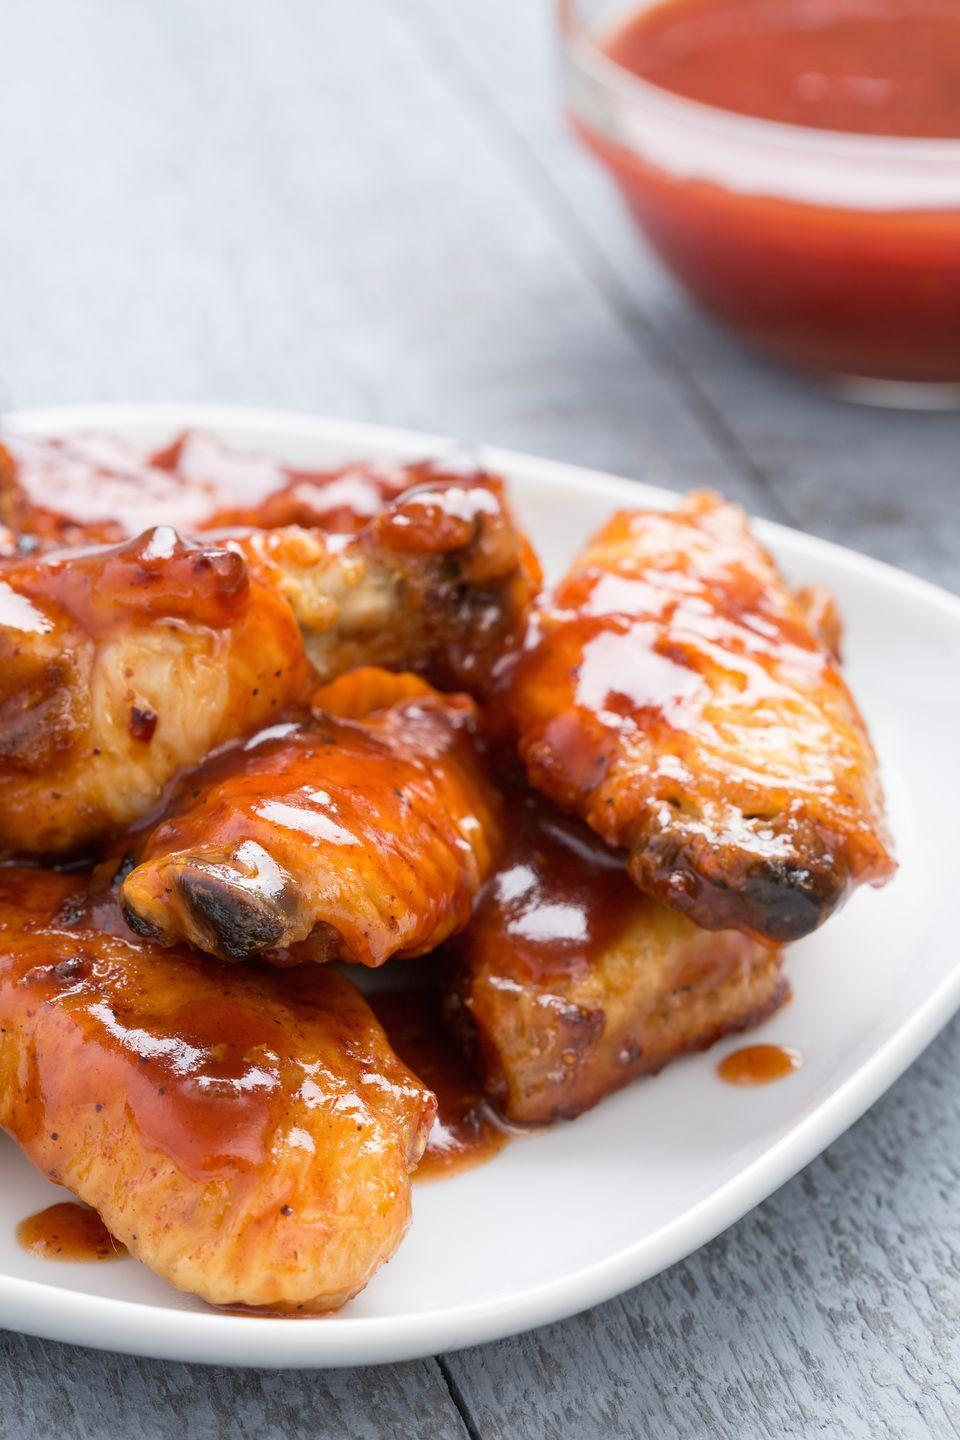 """<p>When you want to take a break from buffalo, reach for barbecue sauce—and bourbon for good measure. </p><p>Get the recipe from <a href=""""https://www.delish.com/cooking/recipe-ideas/recipes/a44369/slow-cooker-barbecue-bourbon-chicken-wings-recipe/"""" rel=""""nofollow noopener"""" target=""""_blank"""" data-ylk=""""slk:Delish"""" class=""""link rapid-noclick-resp"""">Delish</a>.</p>"""